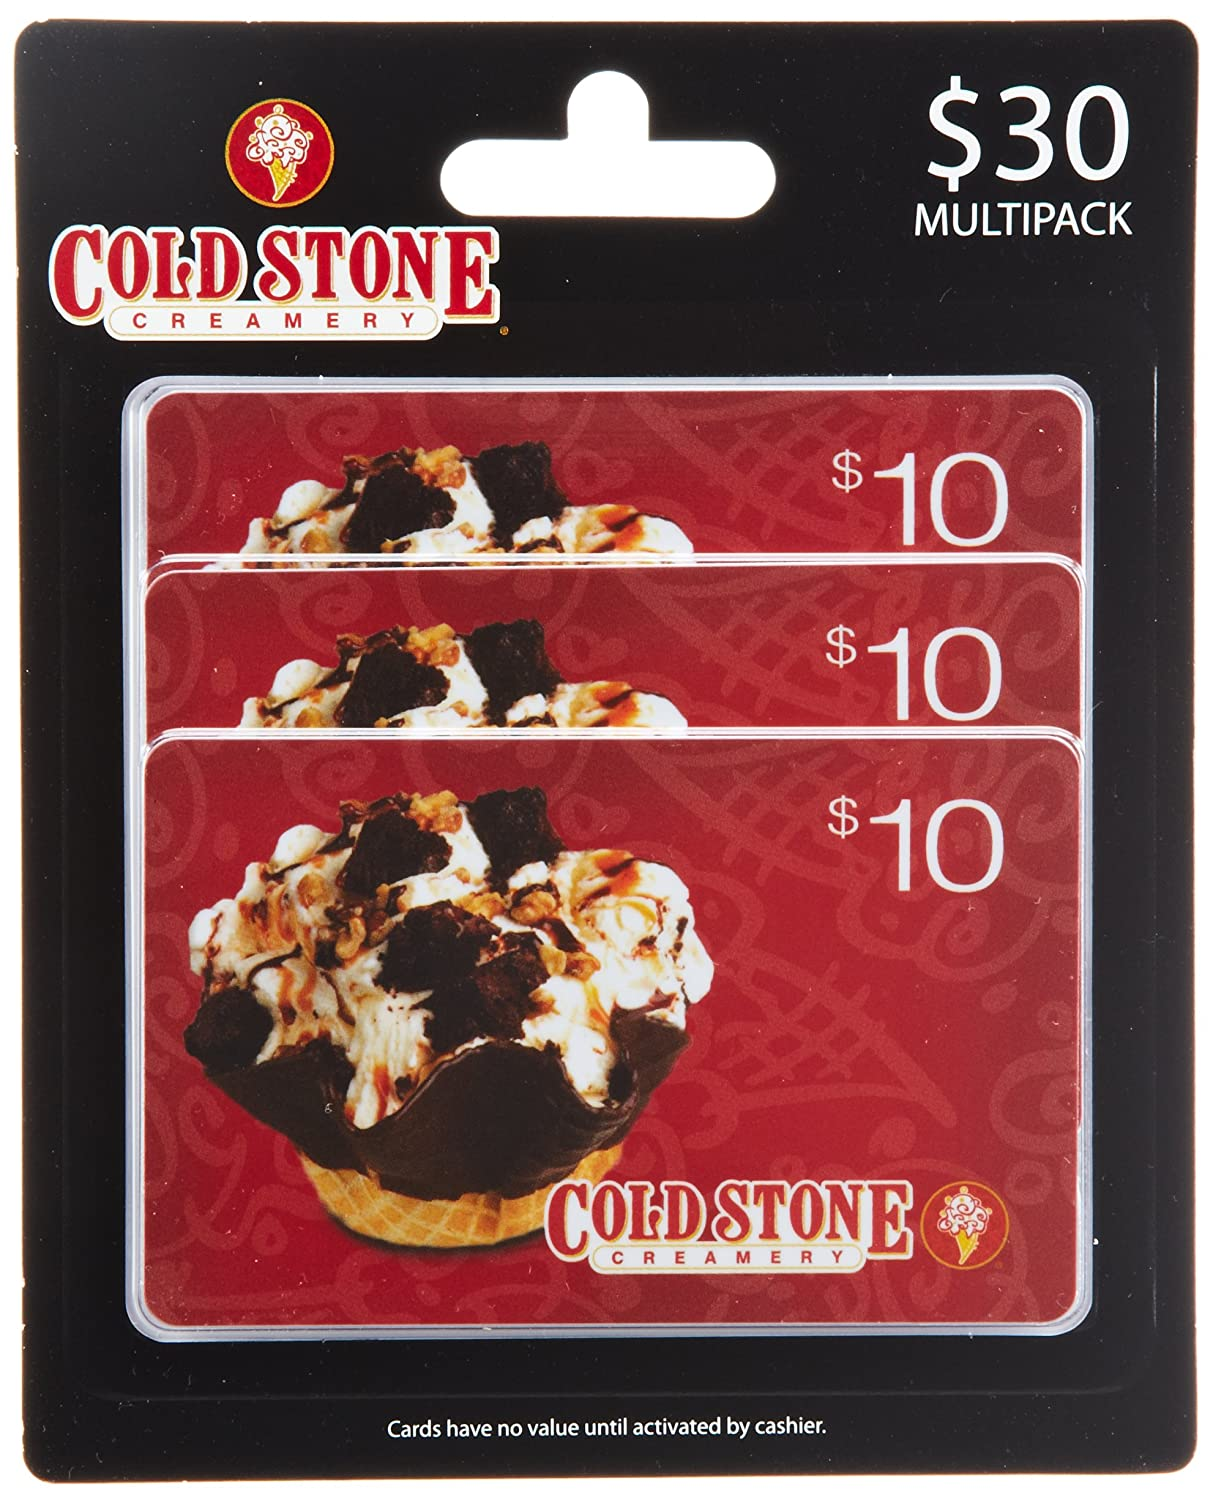 Cold Stone Creamery Gift Cards, Multipack of 3 Multipack of 3 - $10